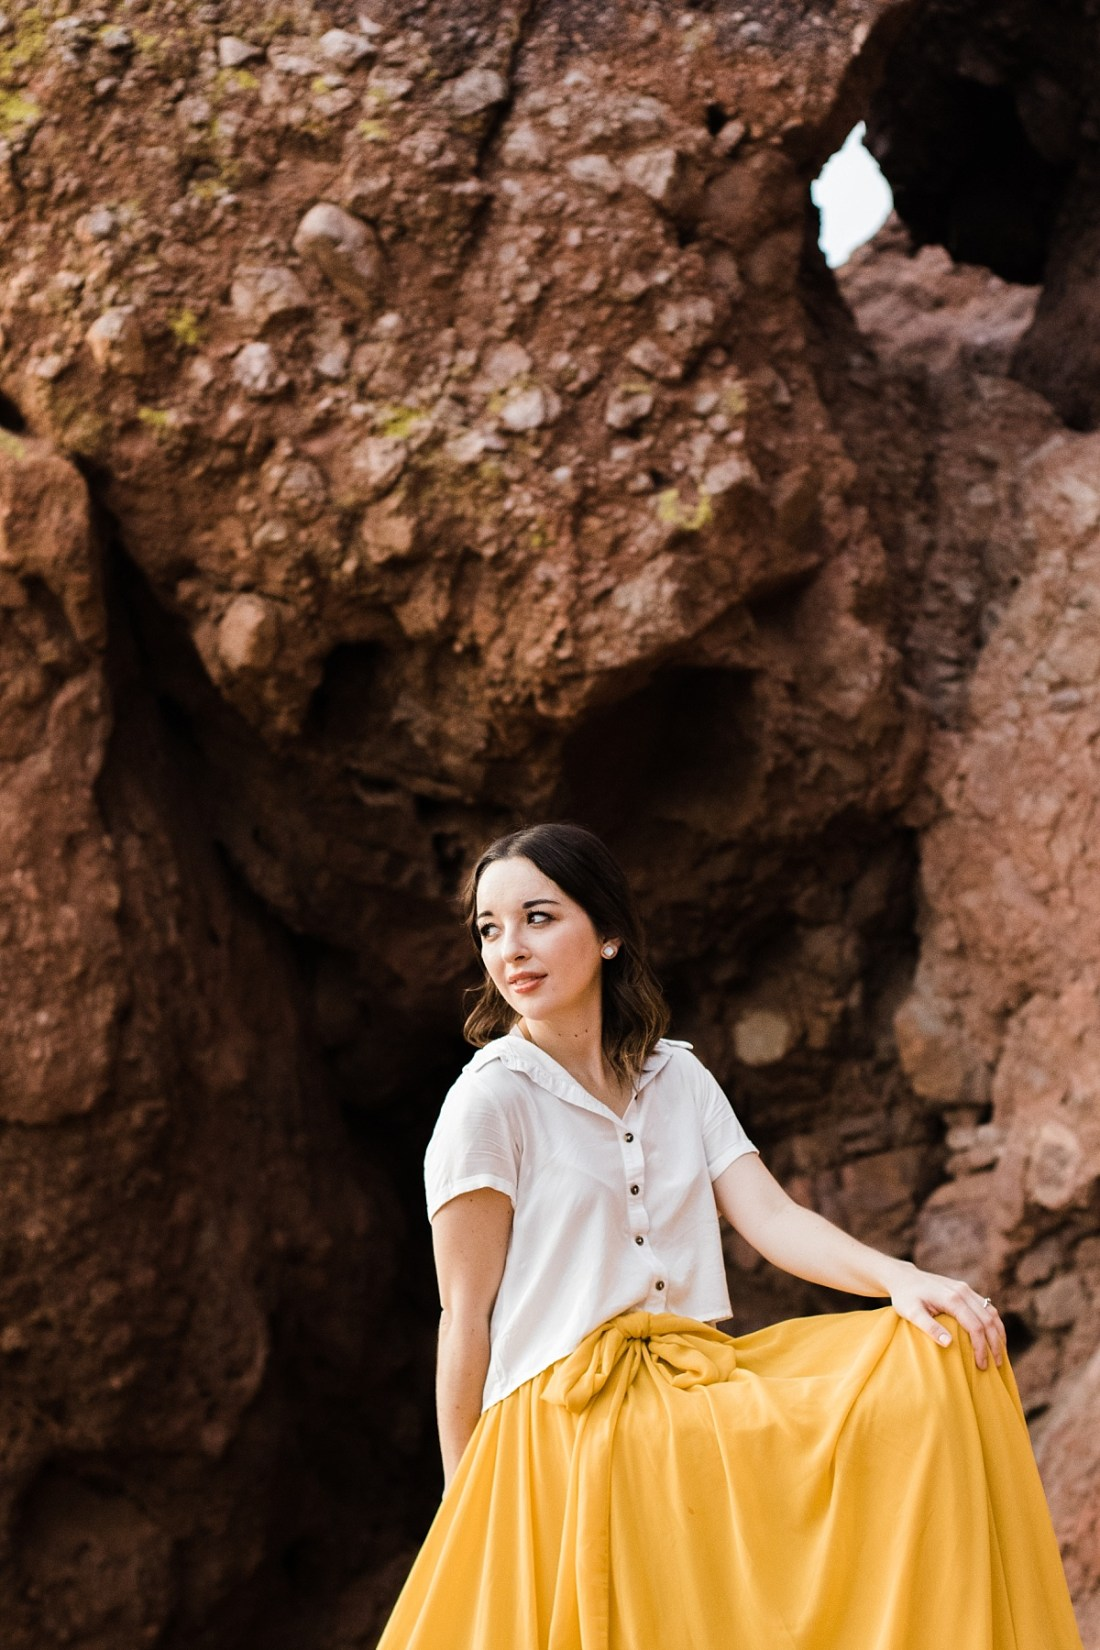 Pictures at Papago Park   Hole in the Rock   East Valley Photographer